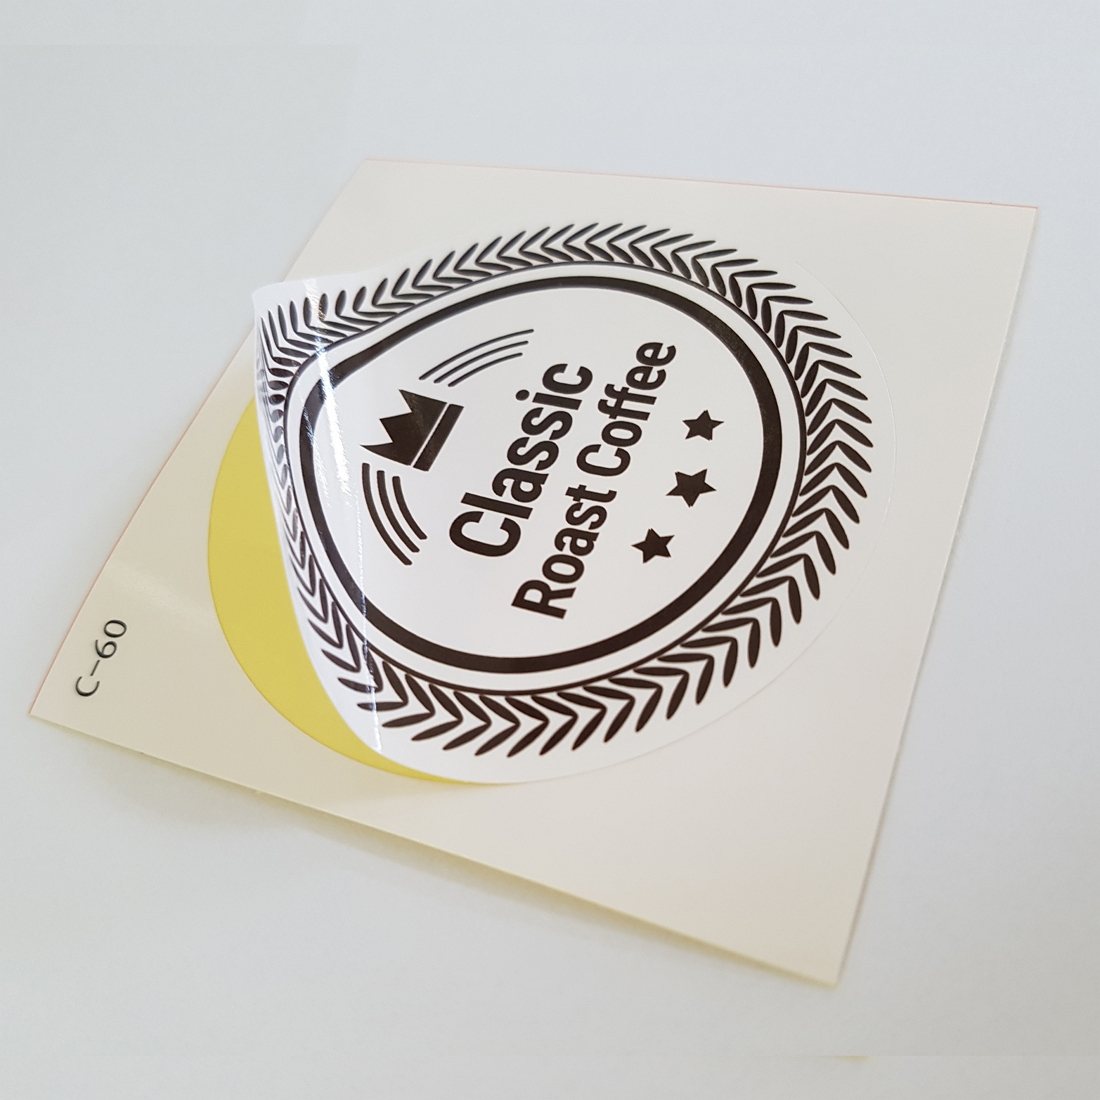 CUT STICKER 2 X QTY 120 X 15 MM CASH ONLY CHOICE OF COLOURS